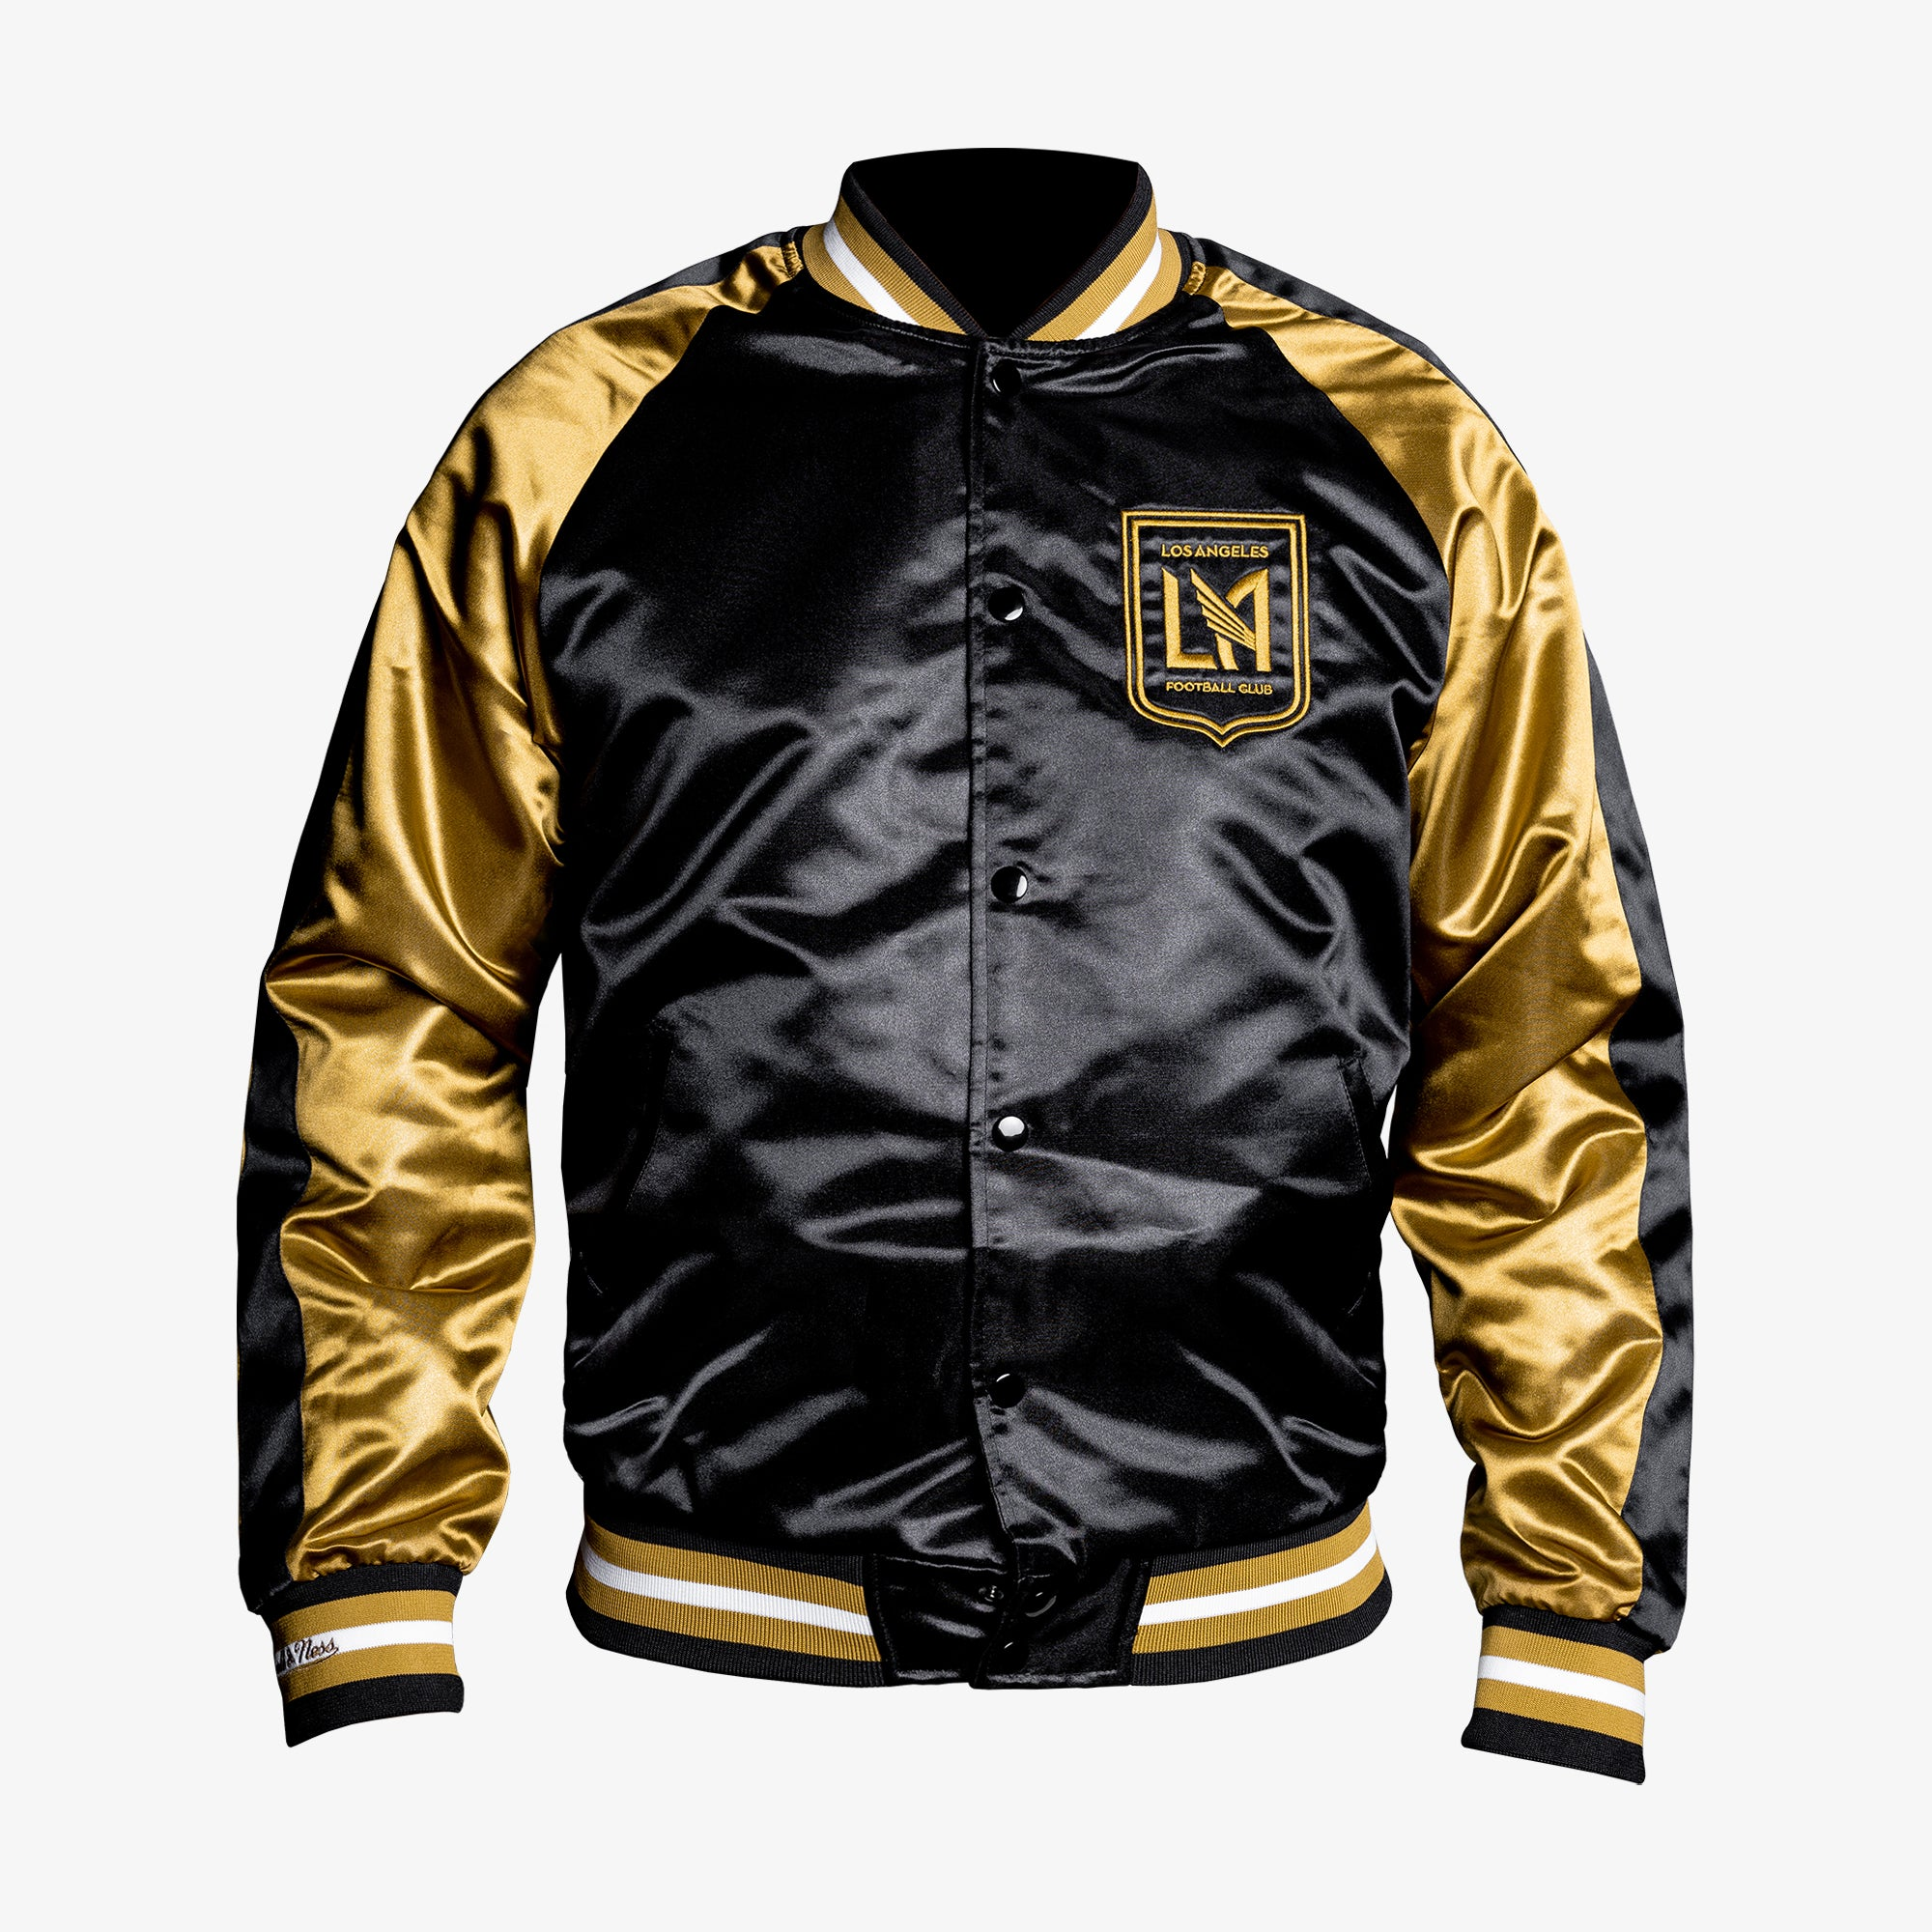 Men's LAFC Satin Black/Gold Jacket